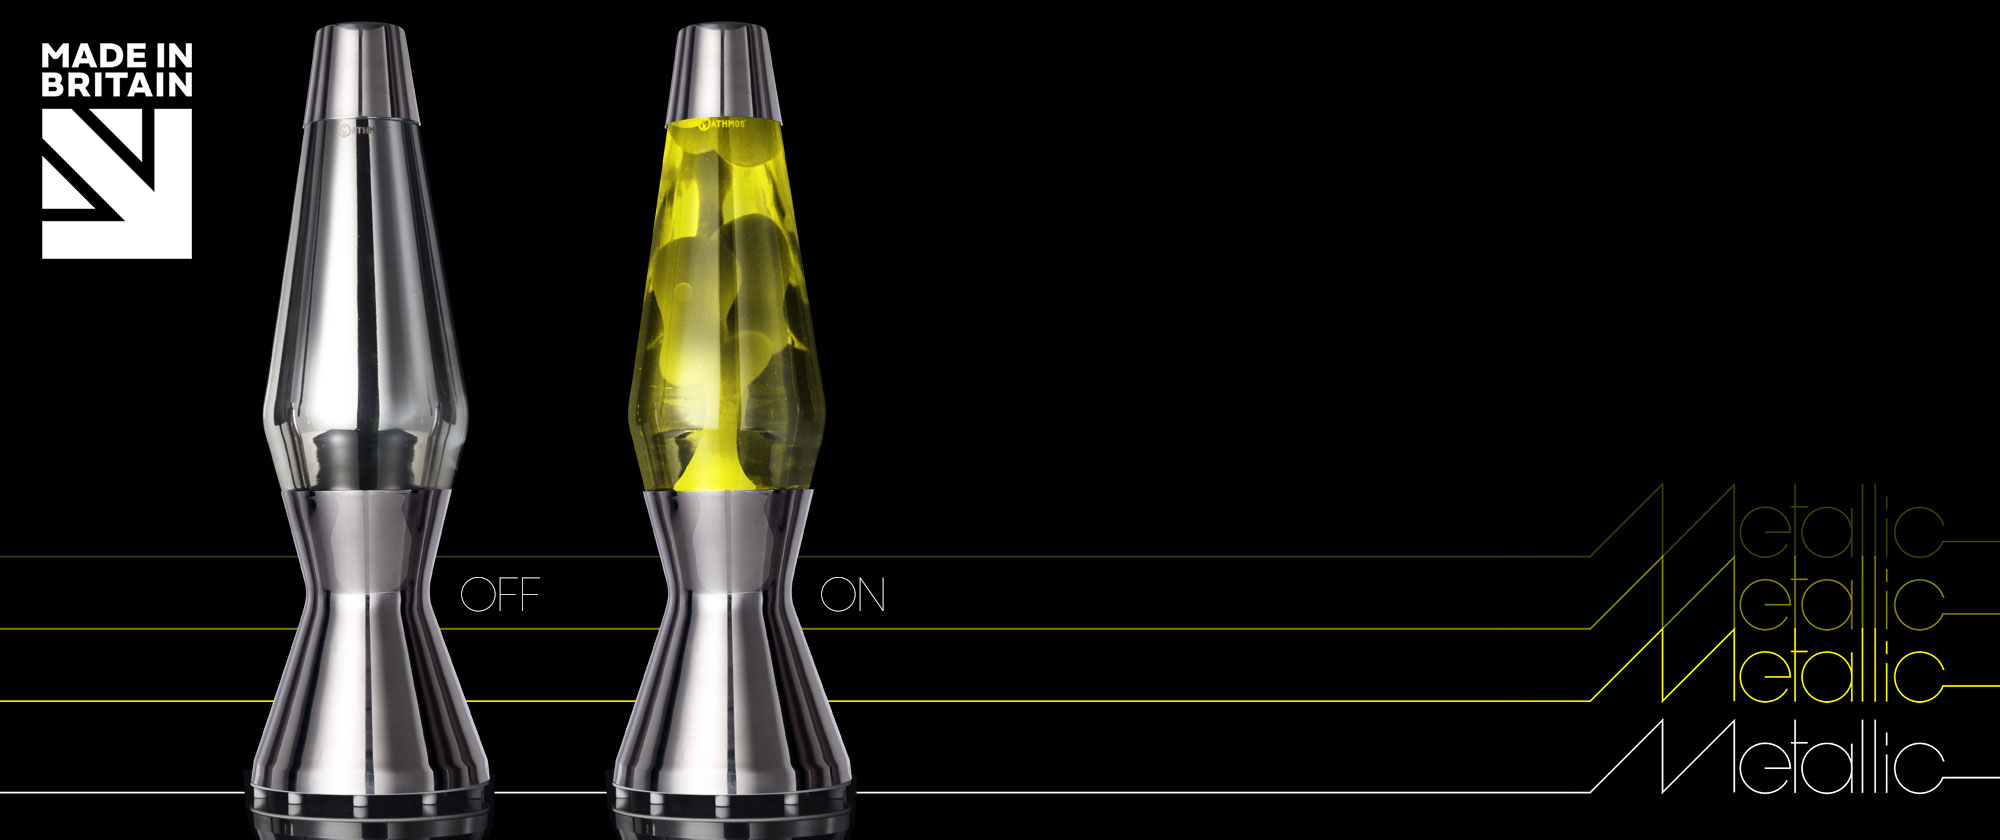 Astro lava lamp: Metallic